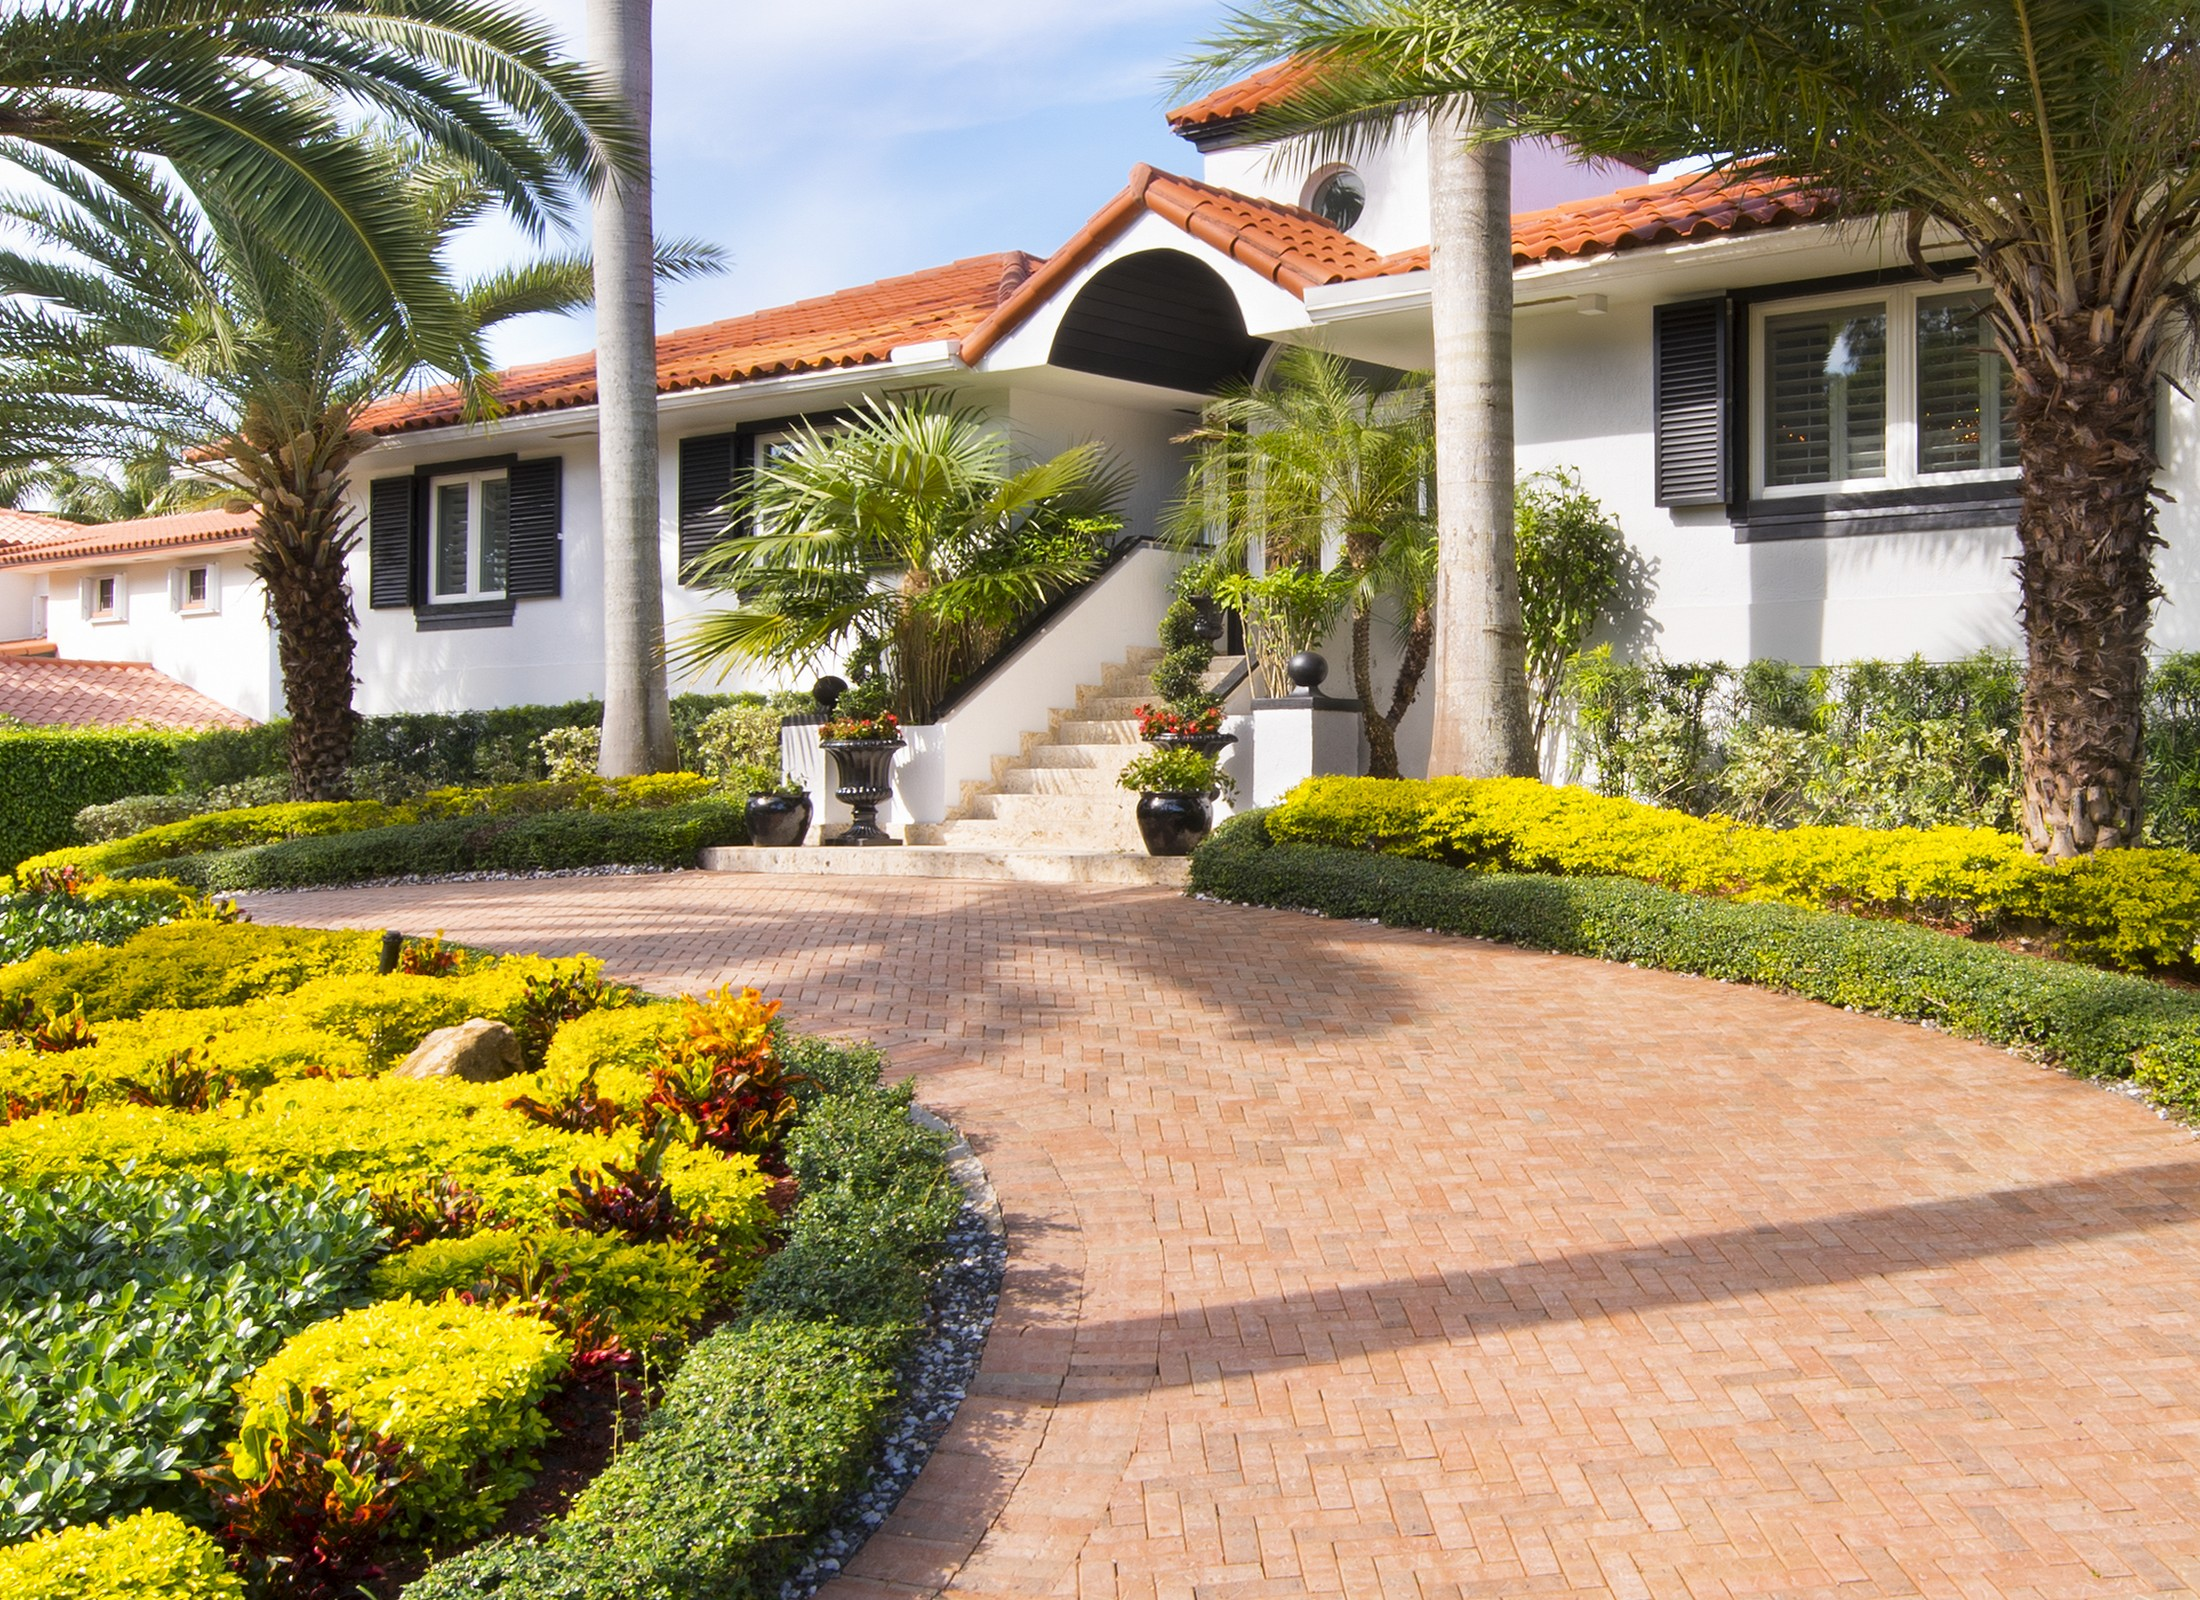 Single Family Home for Sale at 1501 Bella Vista Ave Coral Gables, Florida, 33156 United States